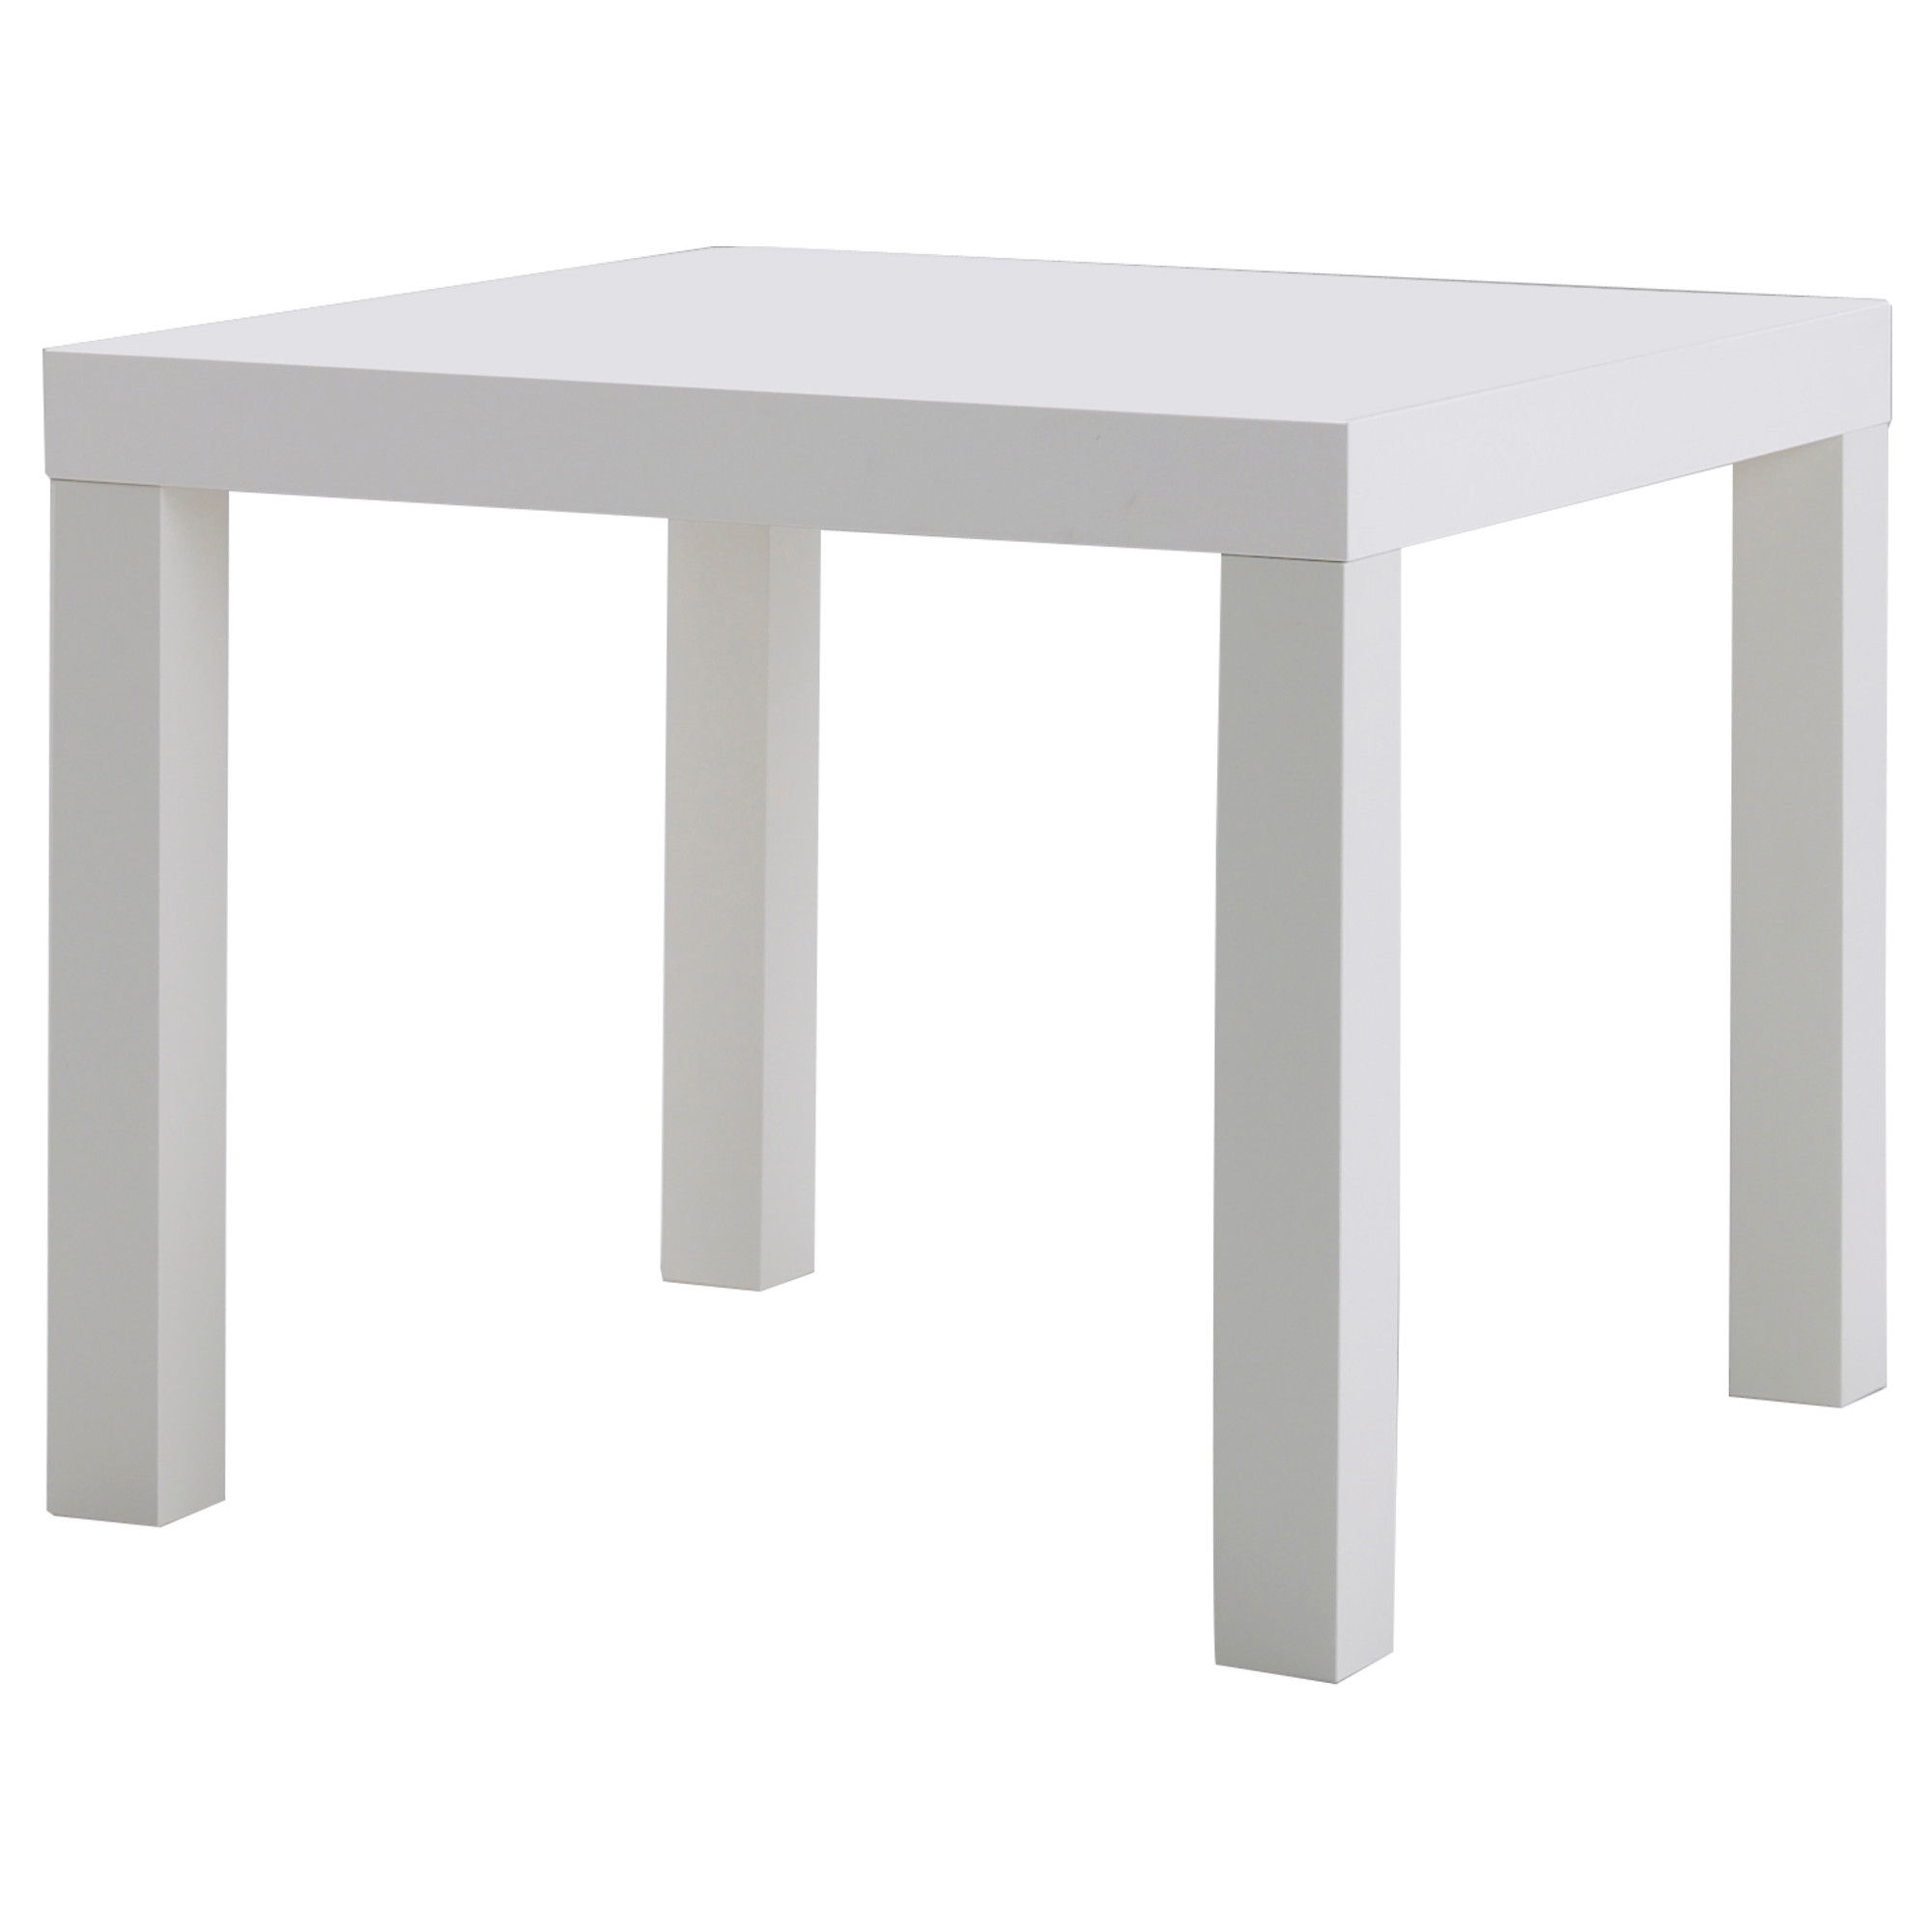 9 ikea items below rm99 that you need for your living room for Ikea table 9 99